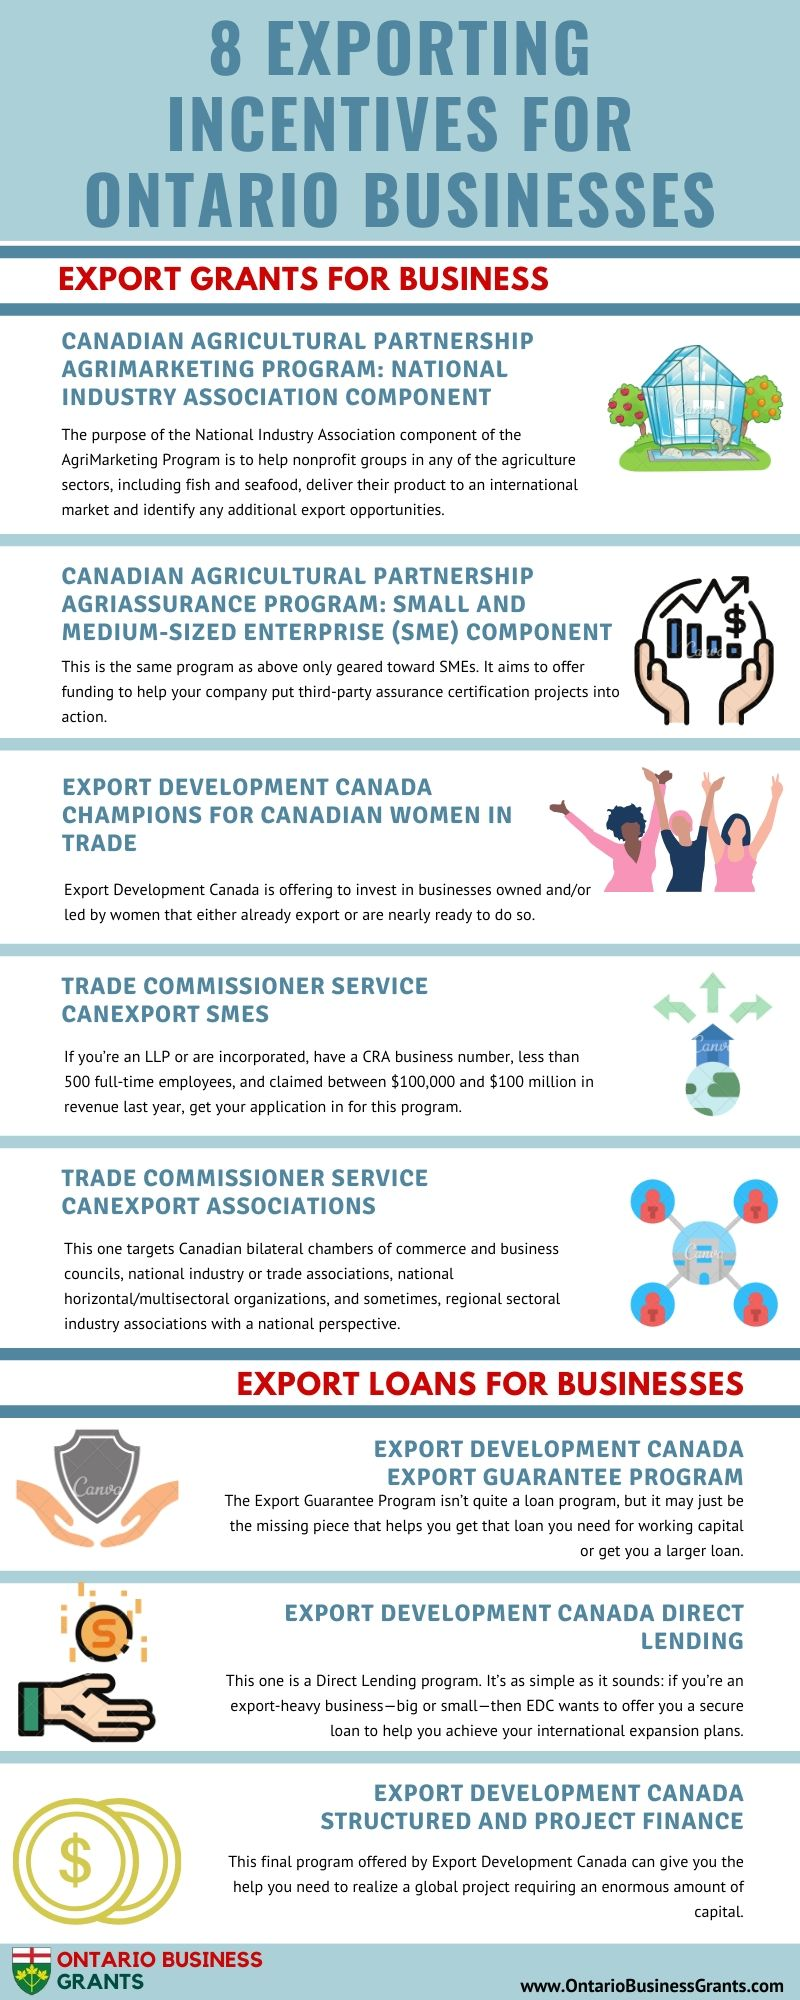 8 Exporting Incentives for Ontario Businesses